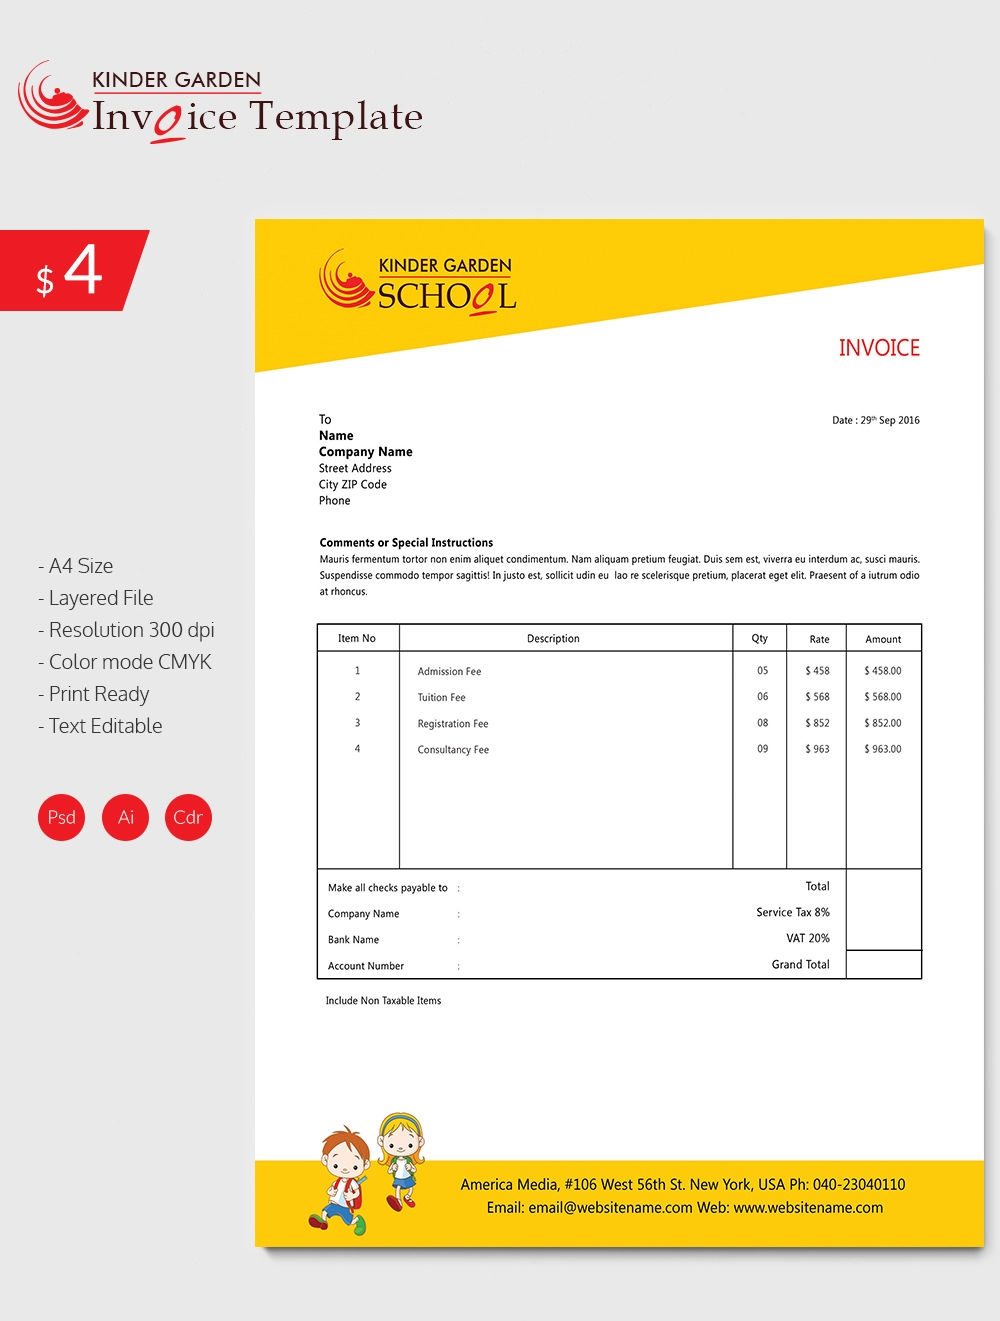 invoice template 41 free word excel pdf psd format download download invoice template pdf